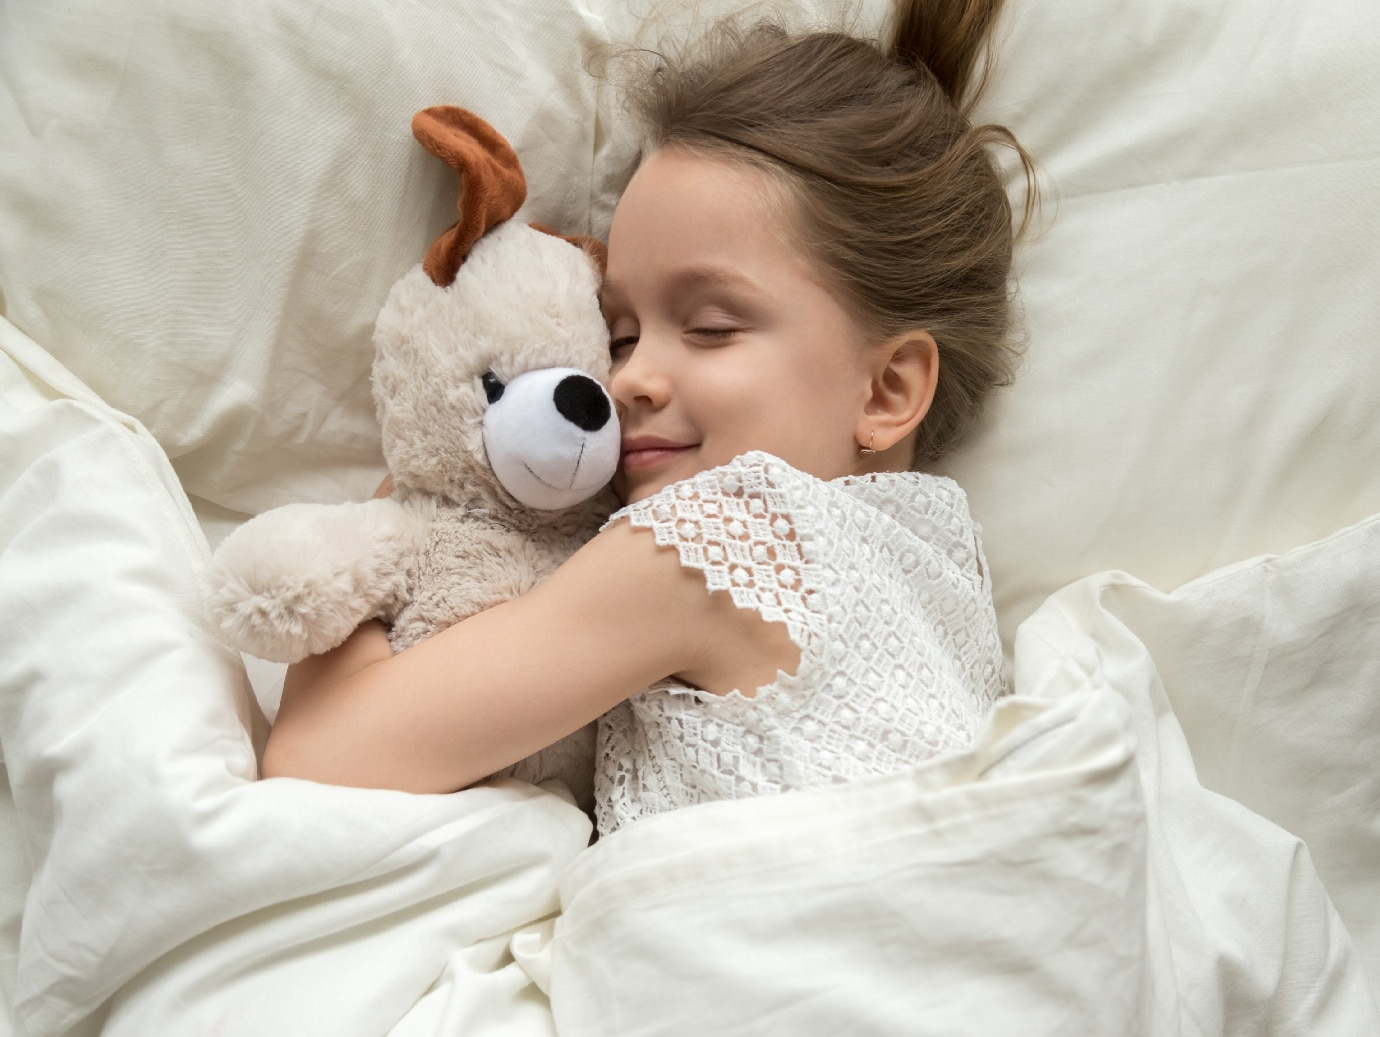 YORK Indoor Air Quality system used for a healthy indoor environment in home of a young girl laying in bed hugging her bear.